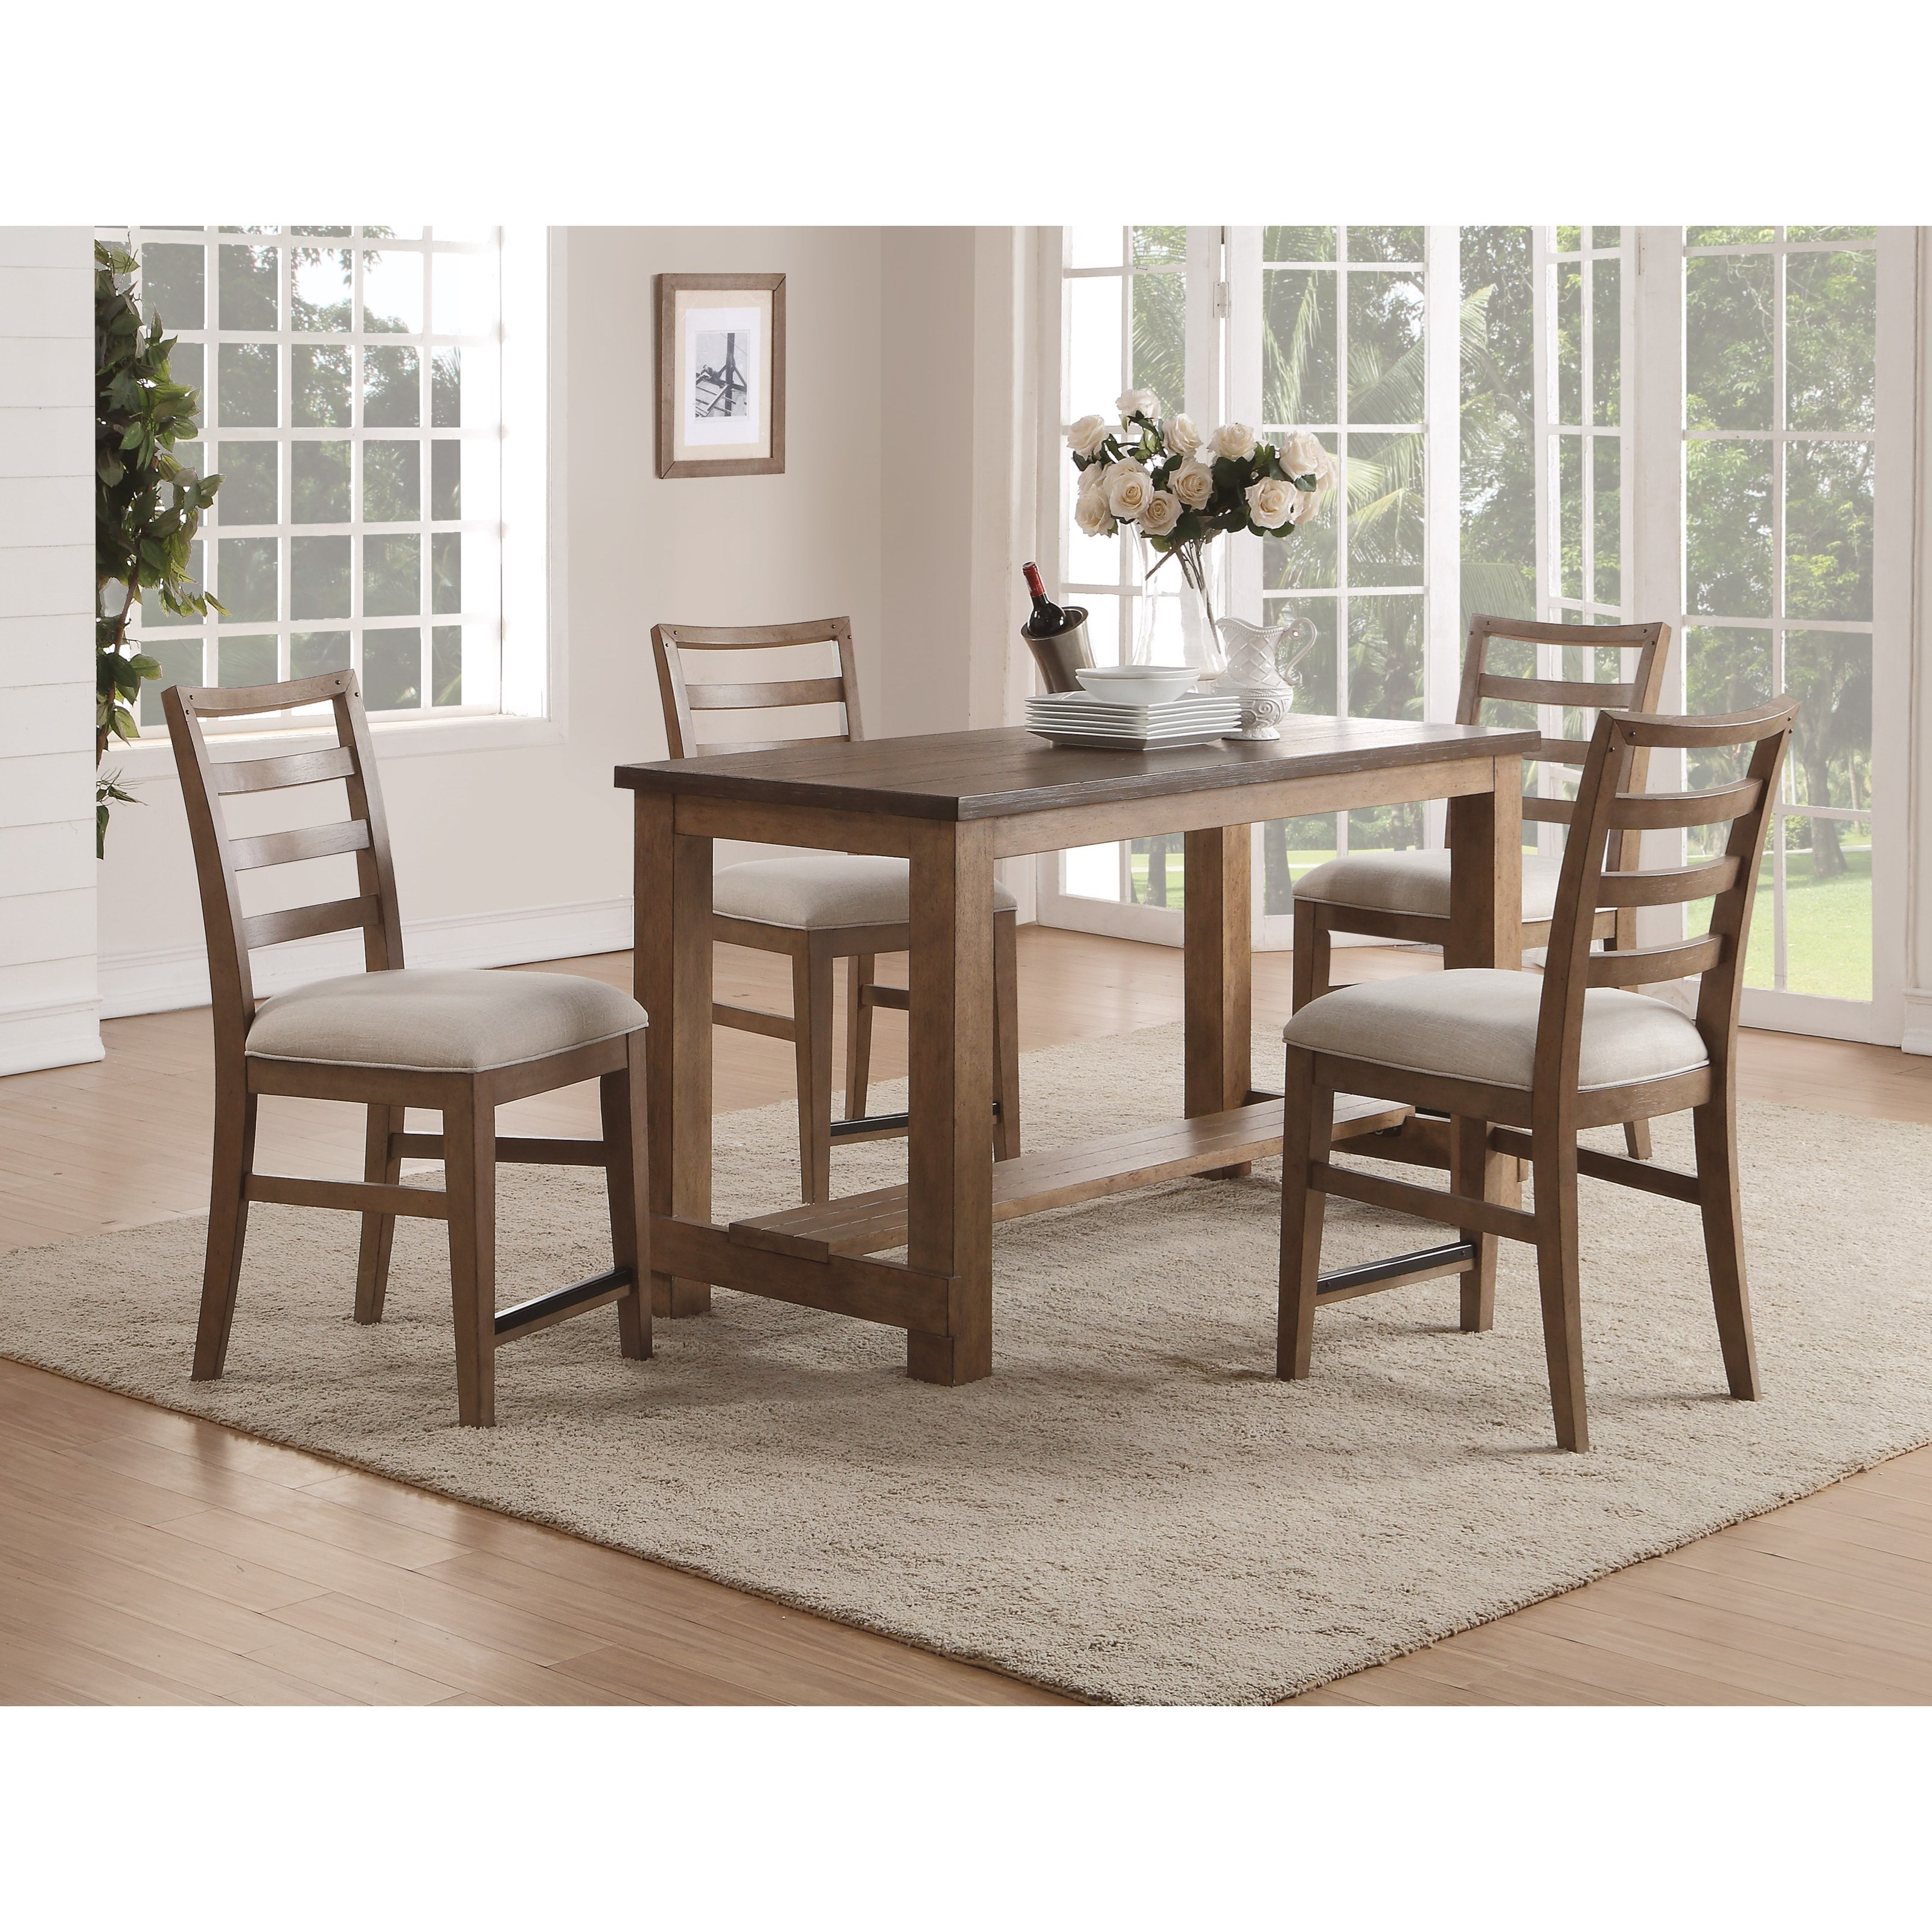 Counter Height Table and Chair Set